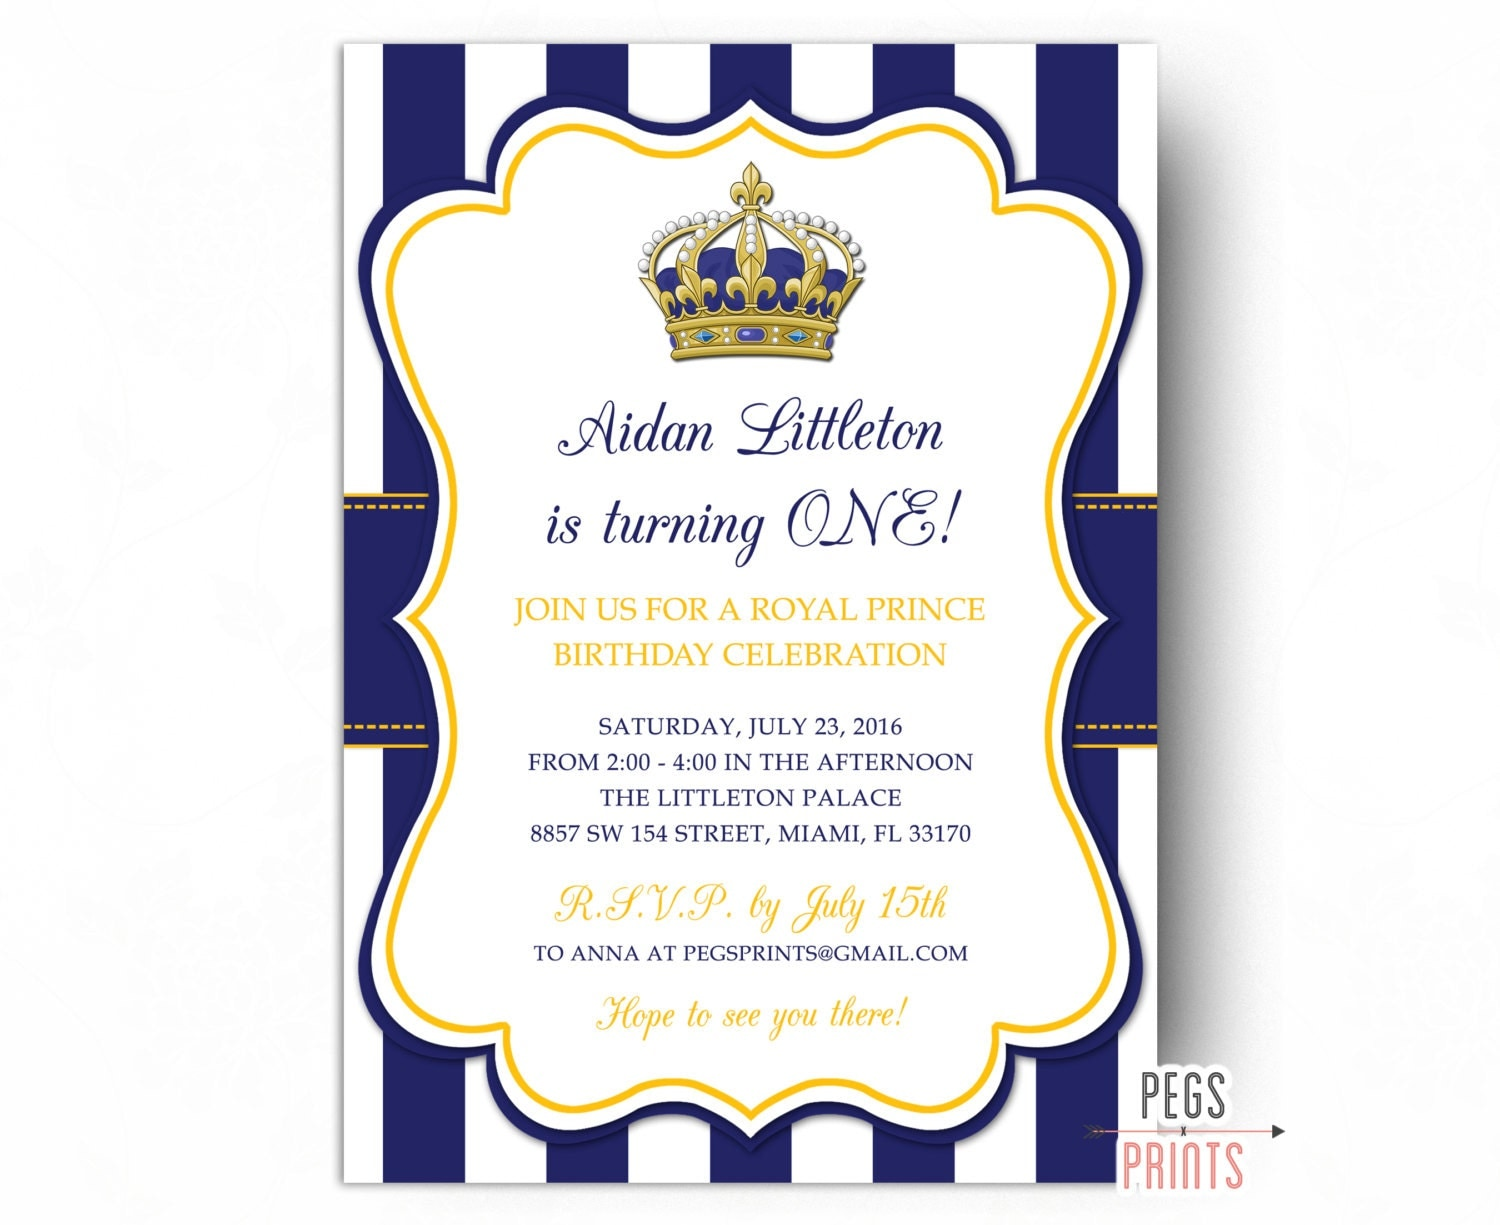 Princess Baby Shower Invitation Wording for amazing invitations sample